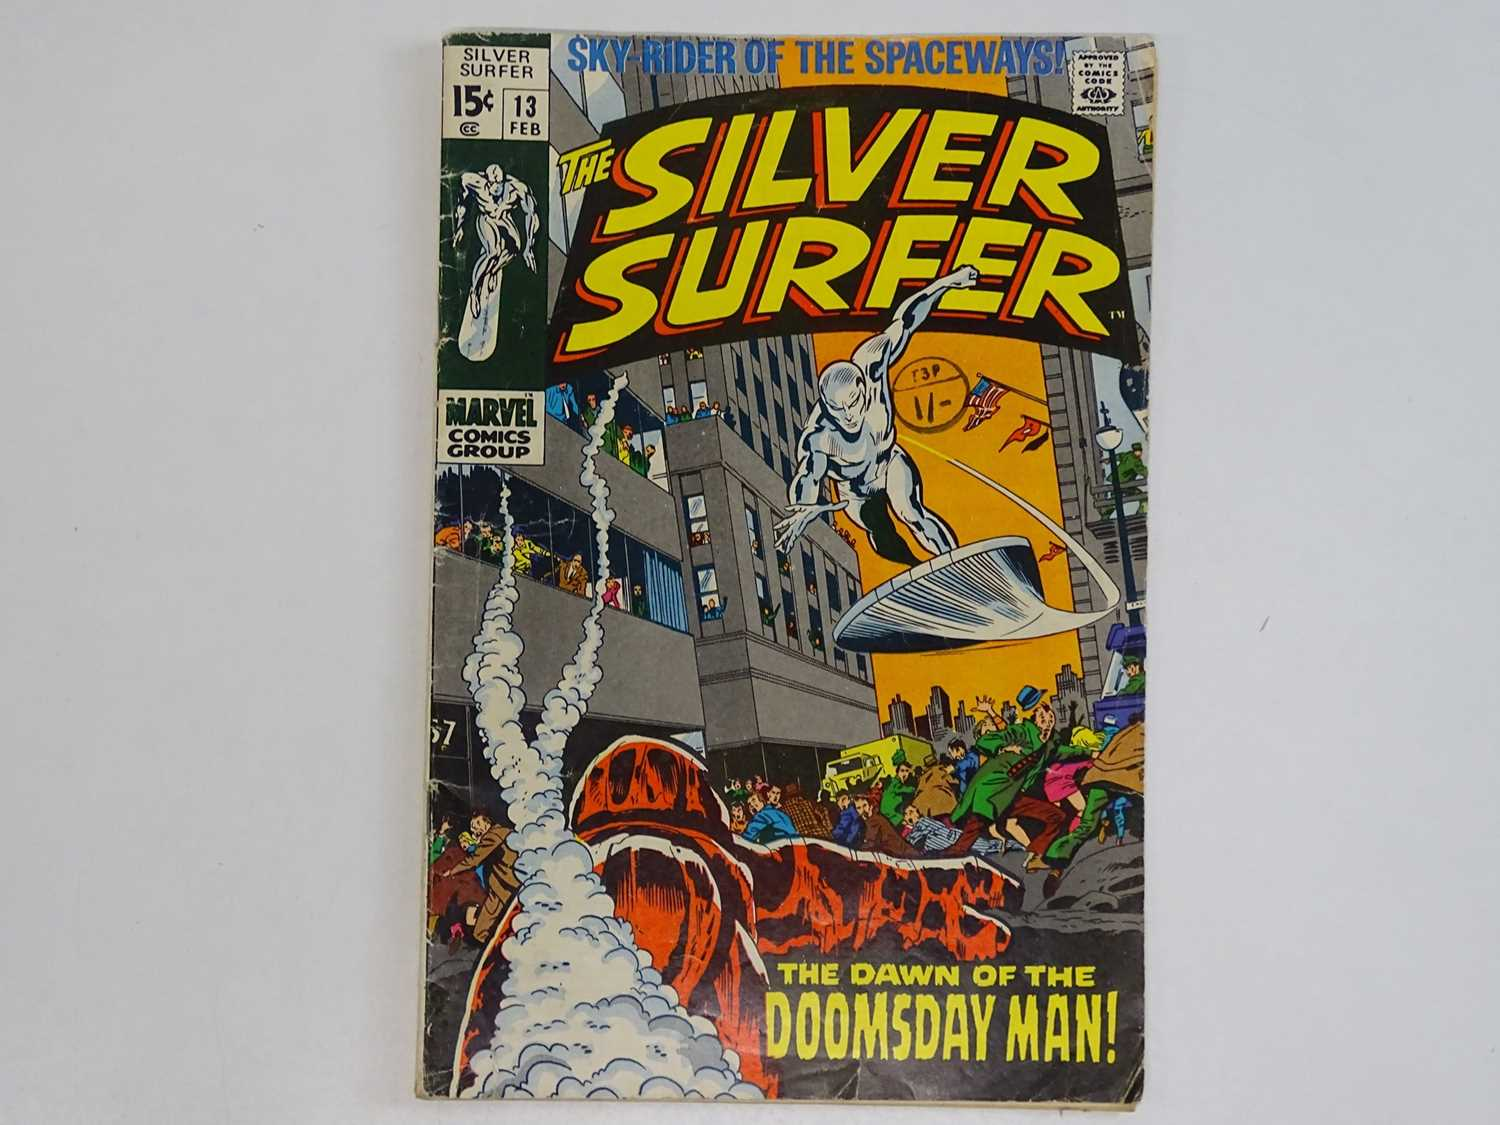 SILVER SURFER #13 - (1970 - MARVEL - UK Cover Price) - First appearance and origin of Doomsday Man -